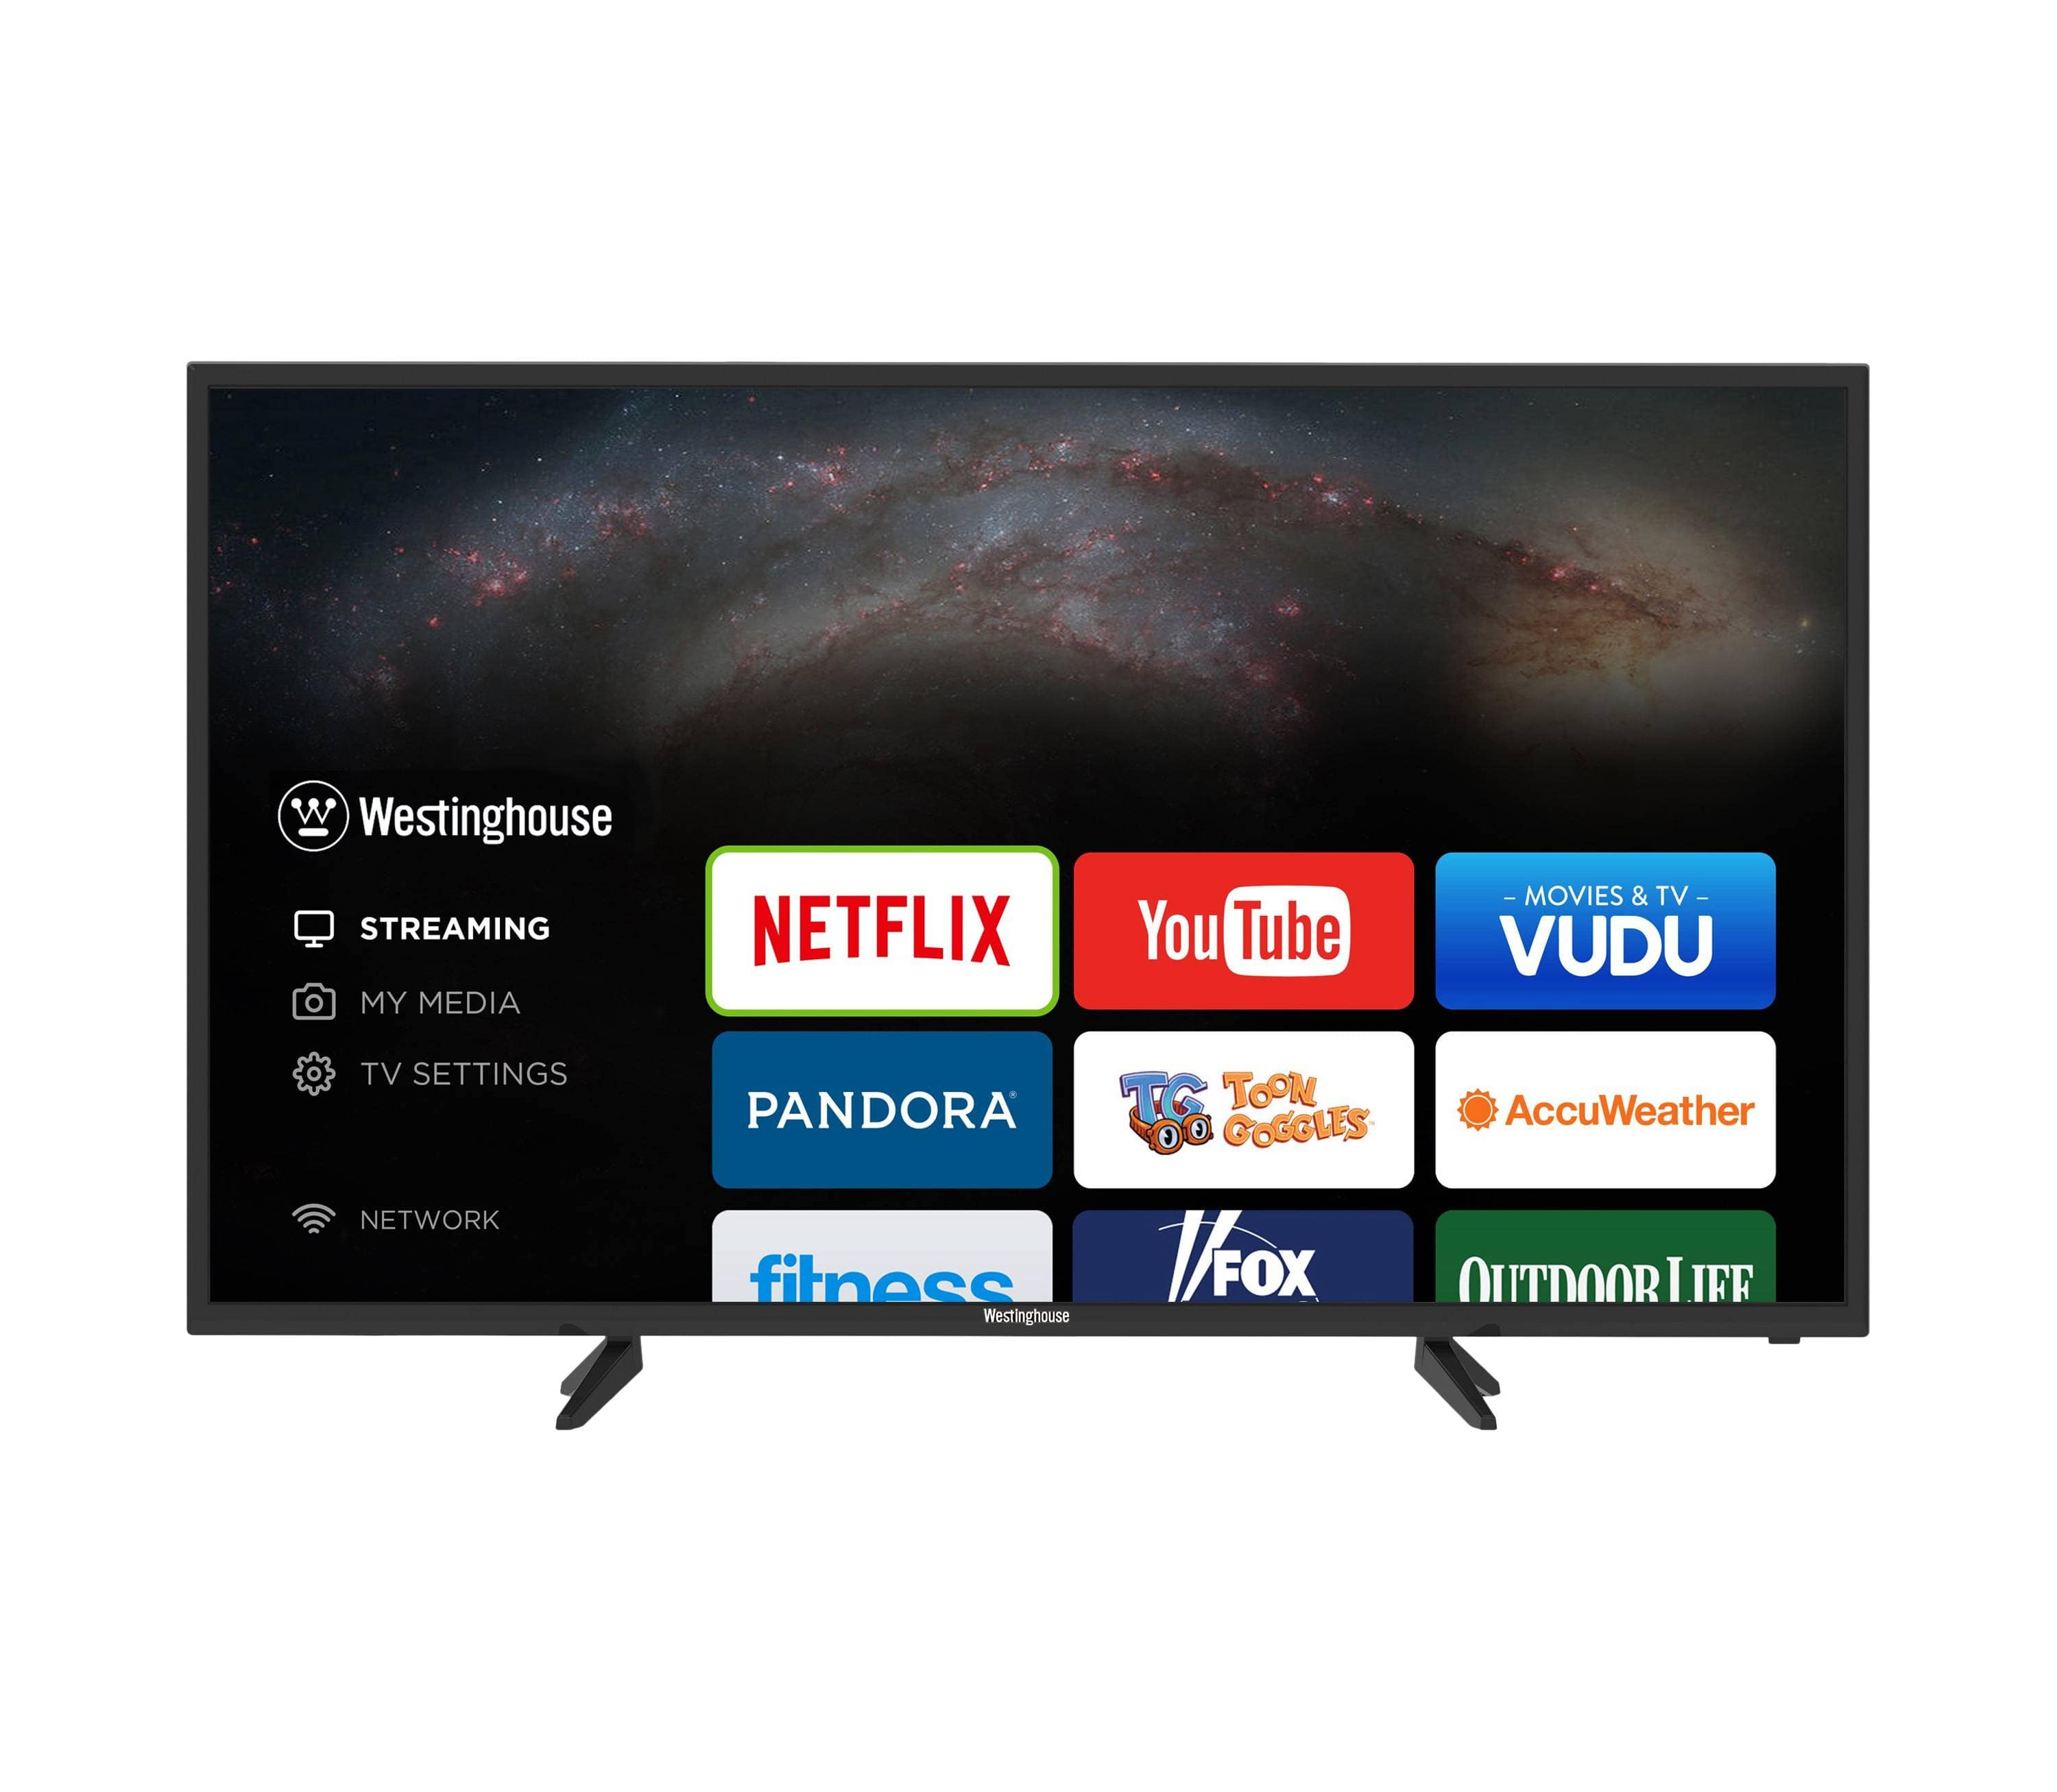 "Westinghouse 55"" 4K UHD Smart TV @ Target - $249.99 or $199.99 w/20% off coupon!"